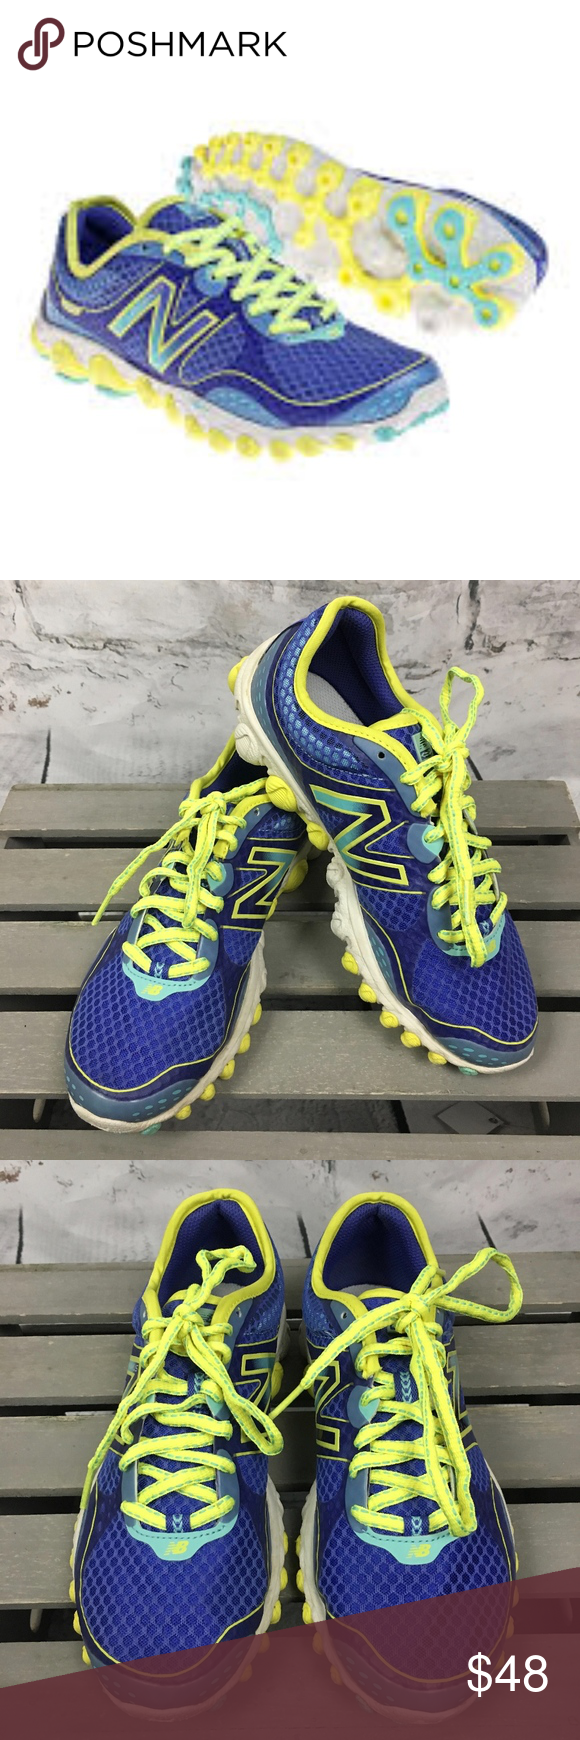 40adcb61d00e New Balance Minimus Ionix 3090 V2 New Balance Minimus Ionix 3090 V2  Preloved in excellent condition Great training shoes that helps promote  proper running ...